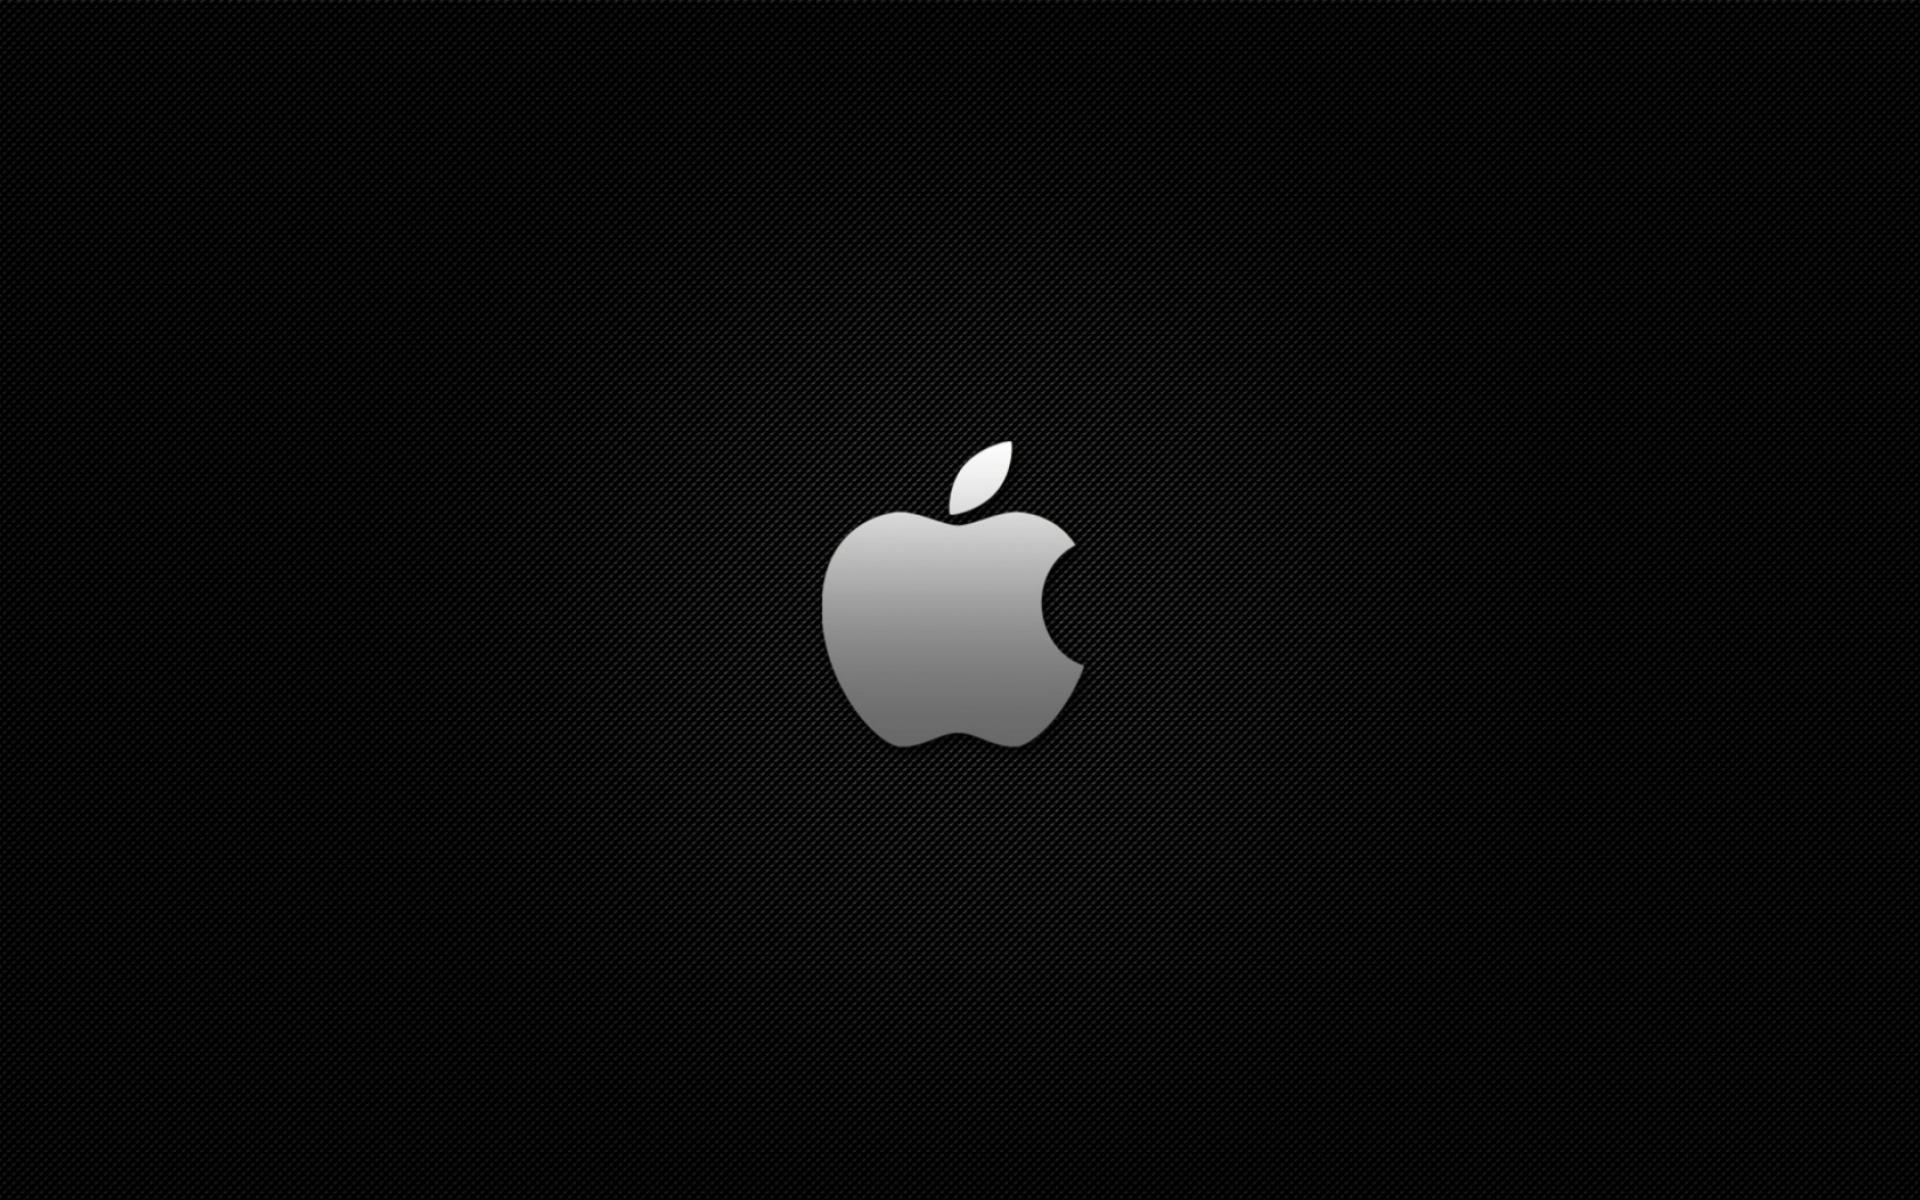 Обои Apple Carbon 1920x1200